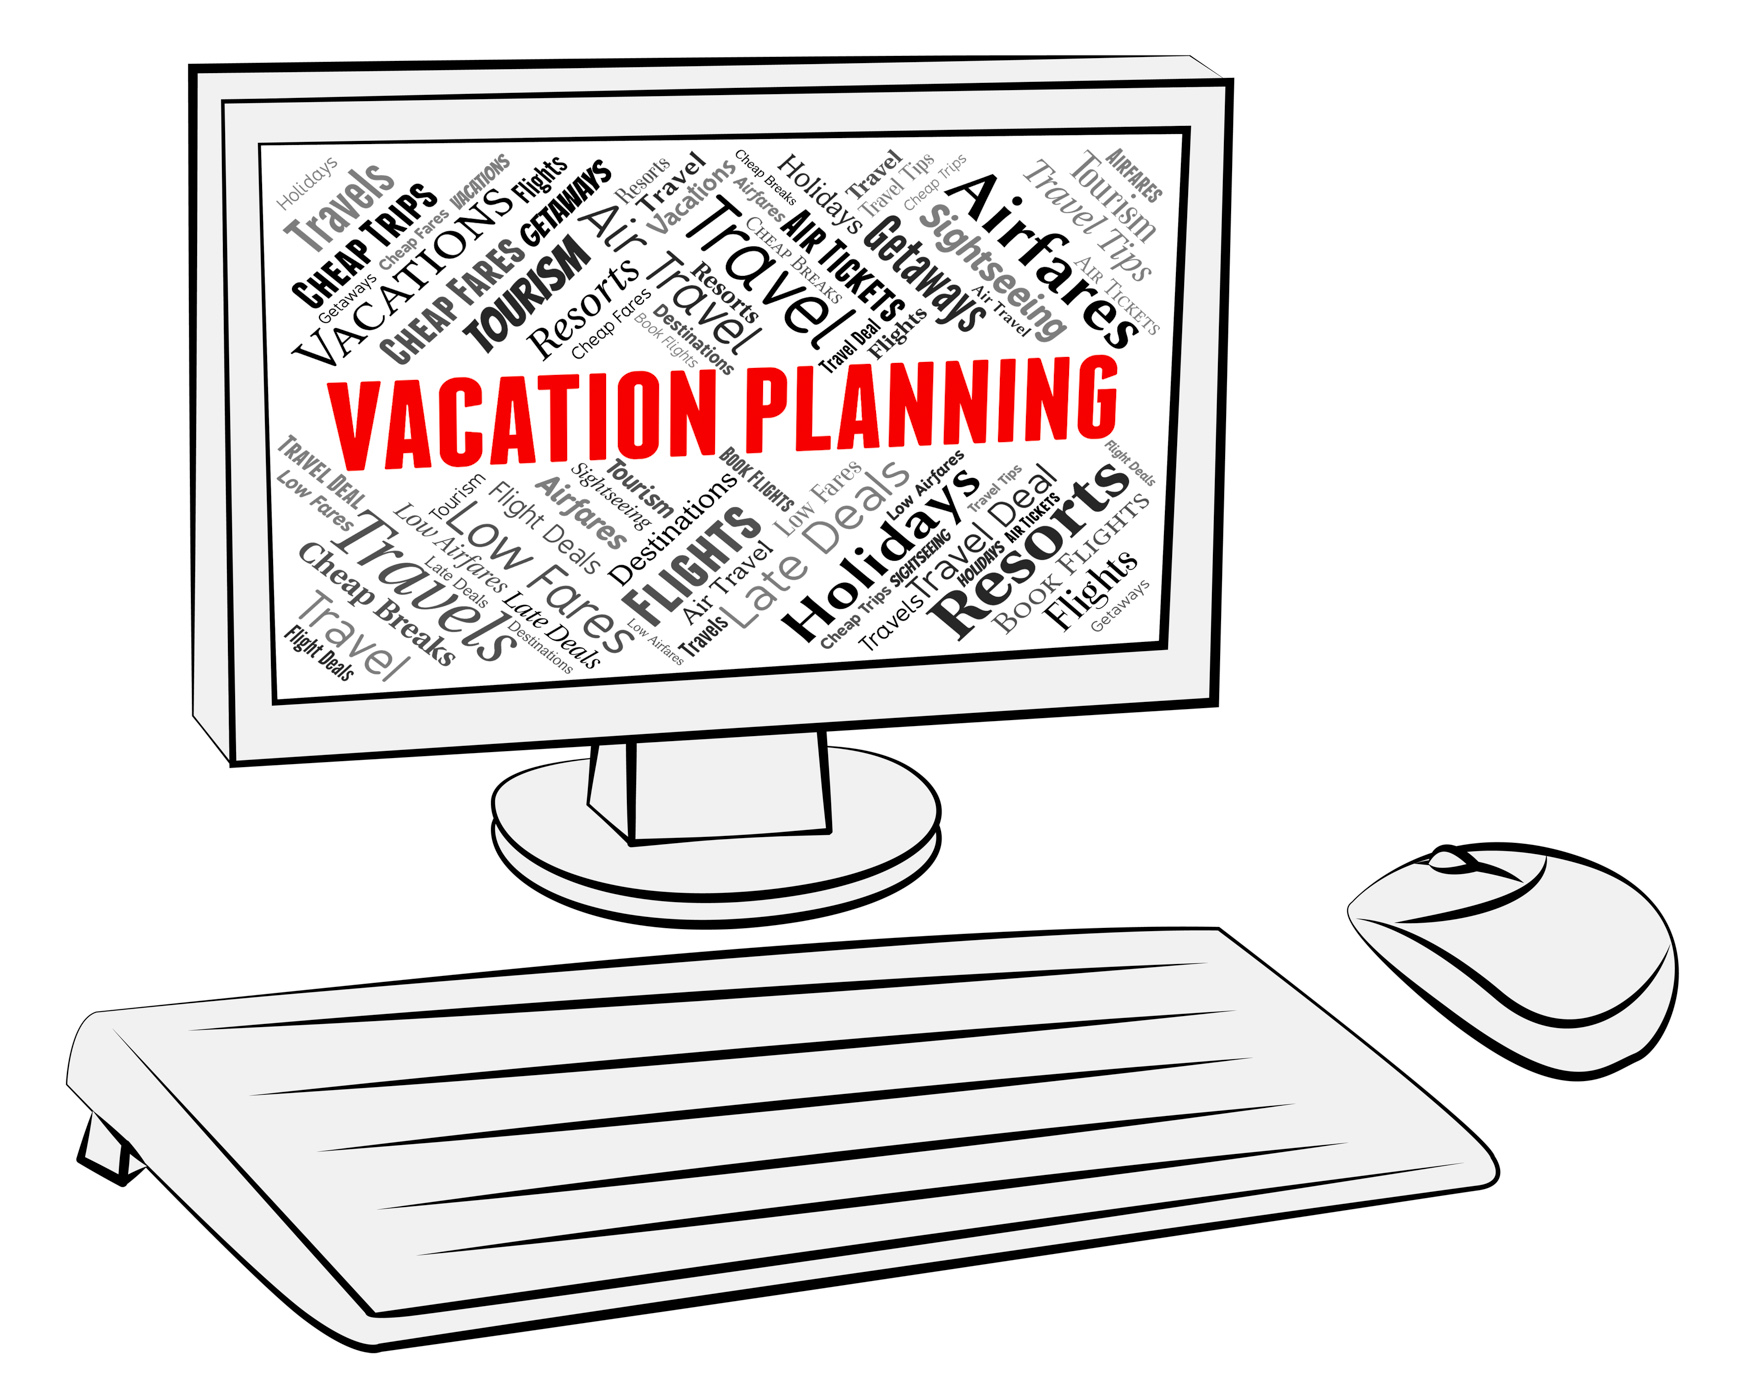 Vacation planning indicates pc scheduler and break photo